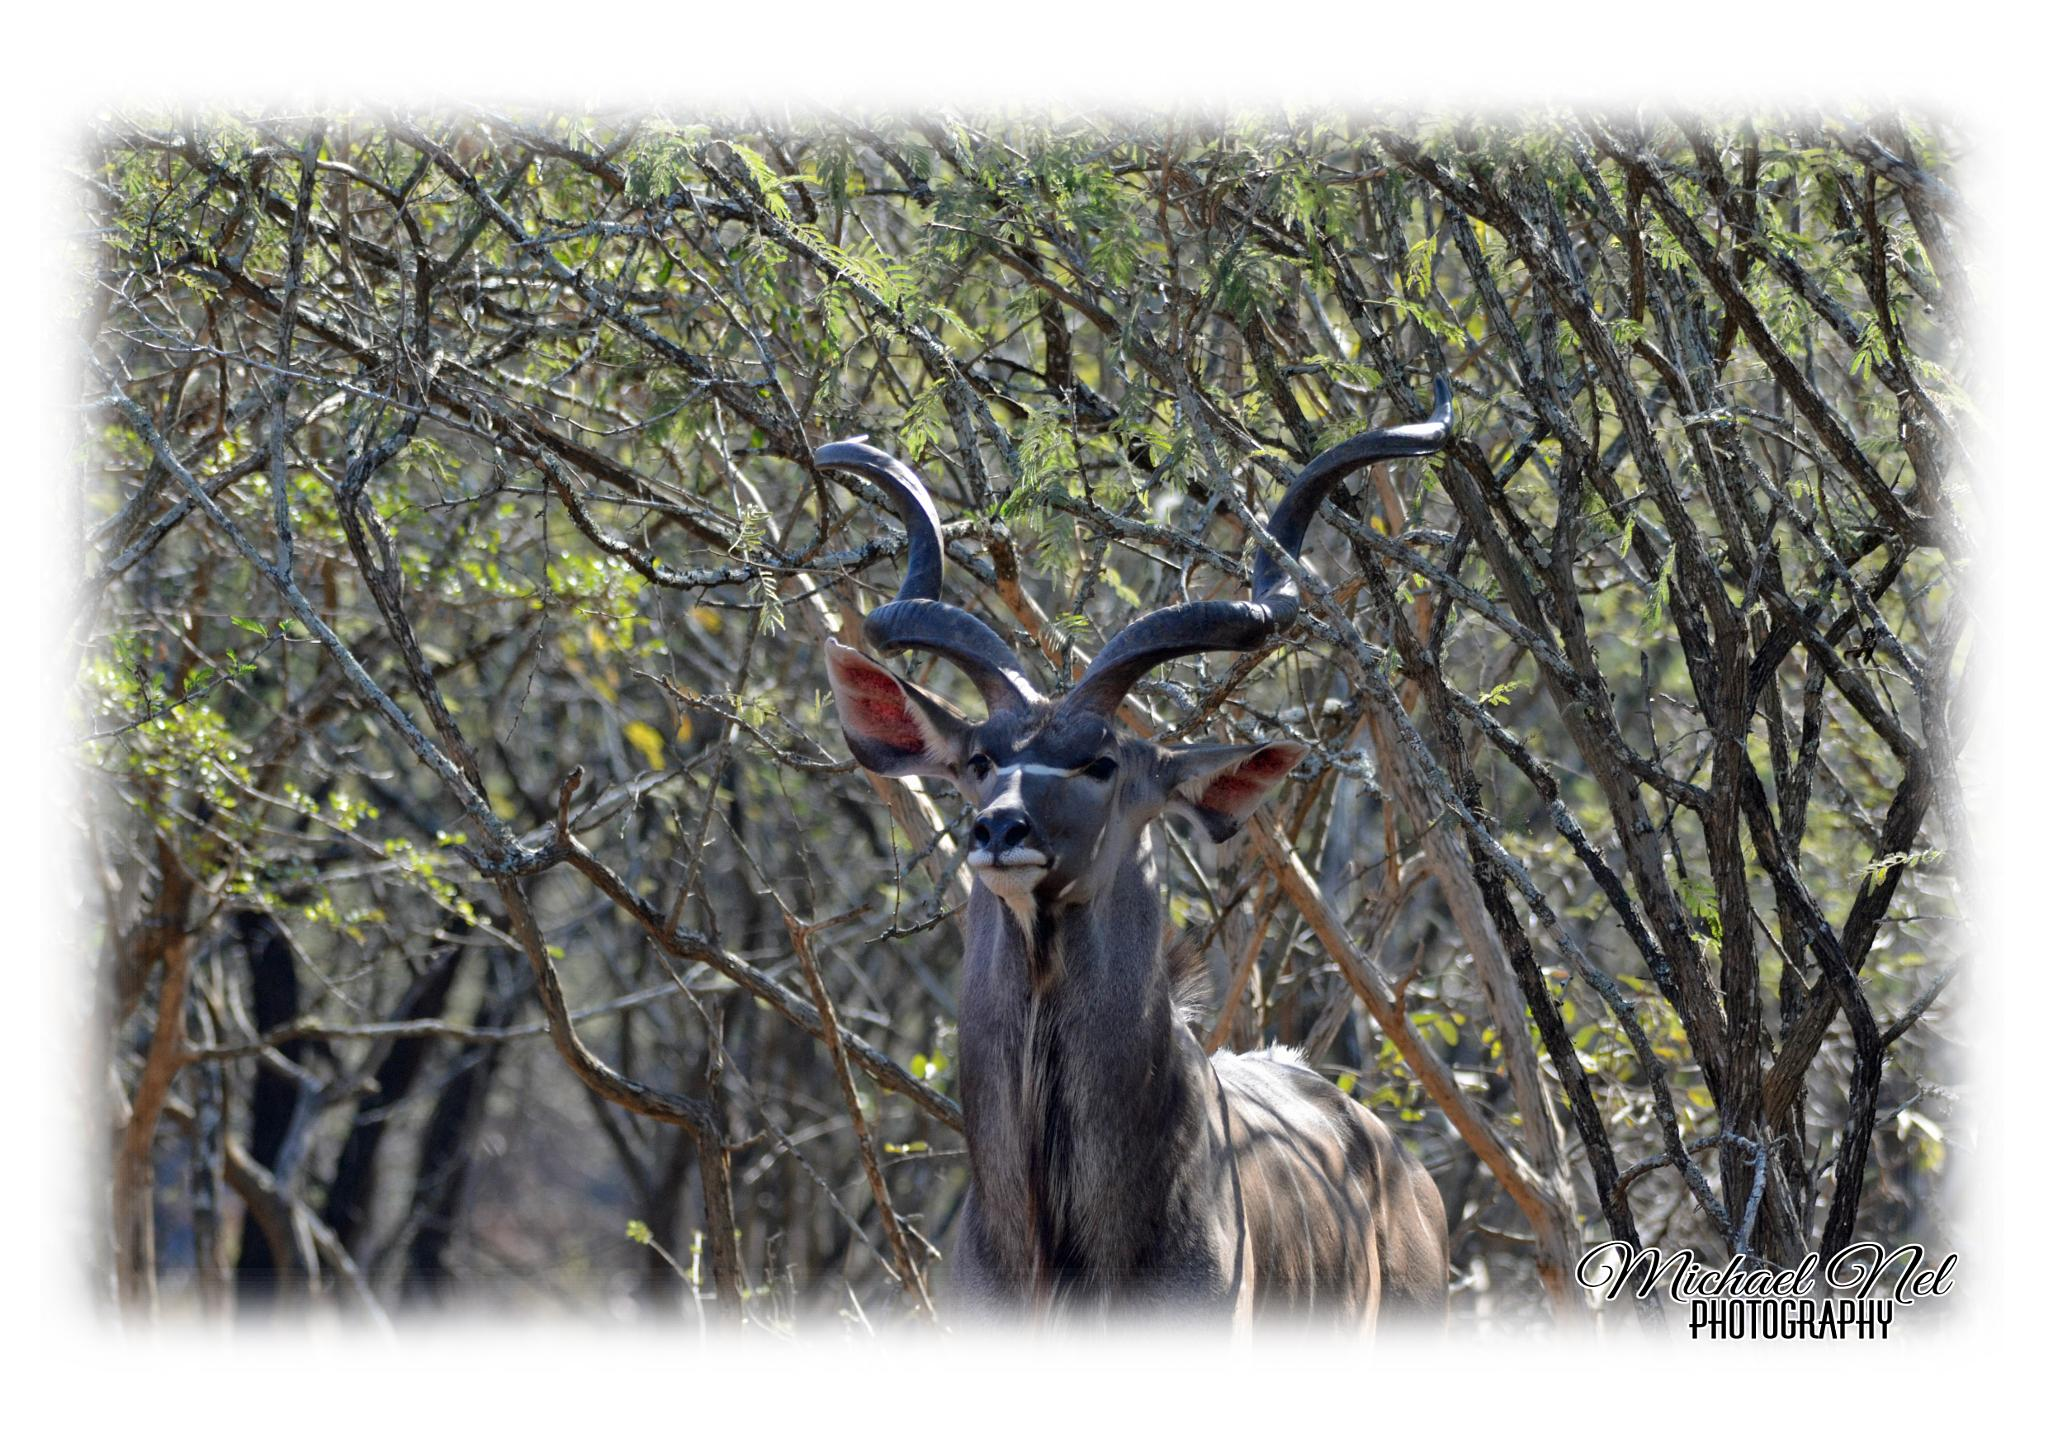 Marloth Park (16/06/2015) - Kudu Bull by michael.nel.526